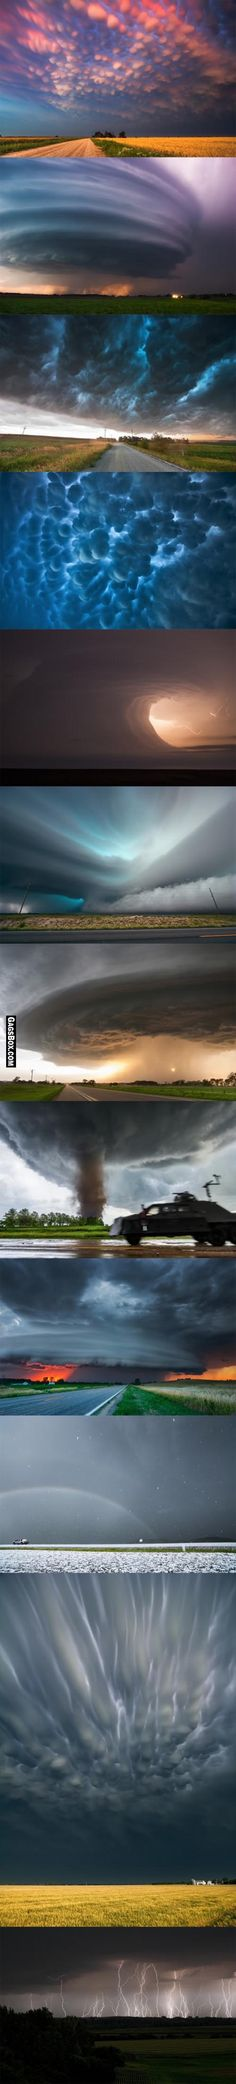 Severe Skies - The Photography of Storm Chaser Mike Holl - #nature #gagsbox